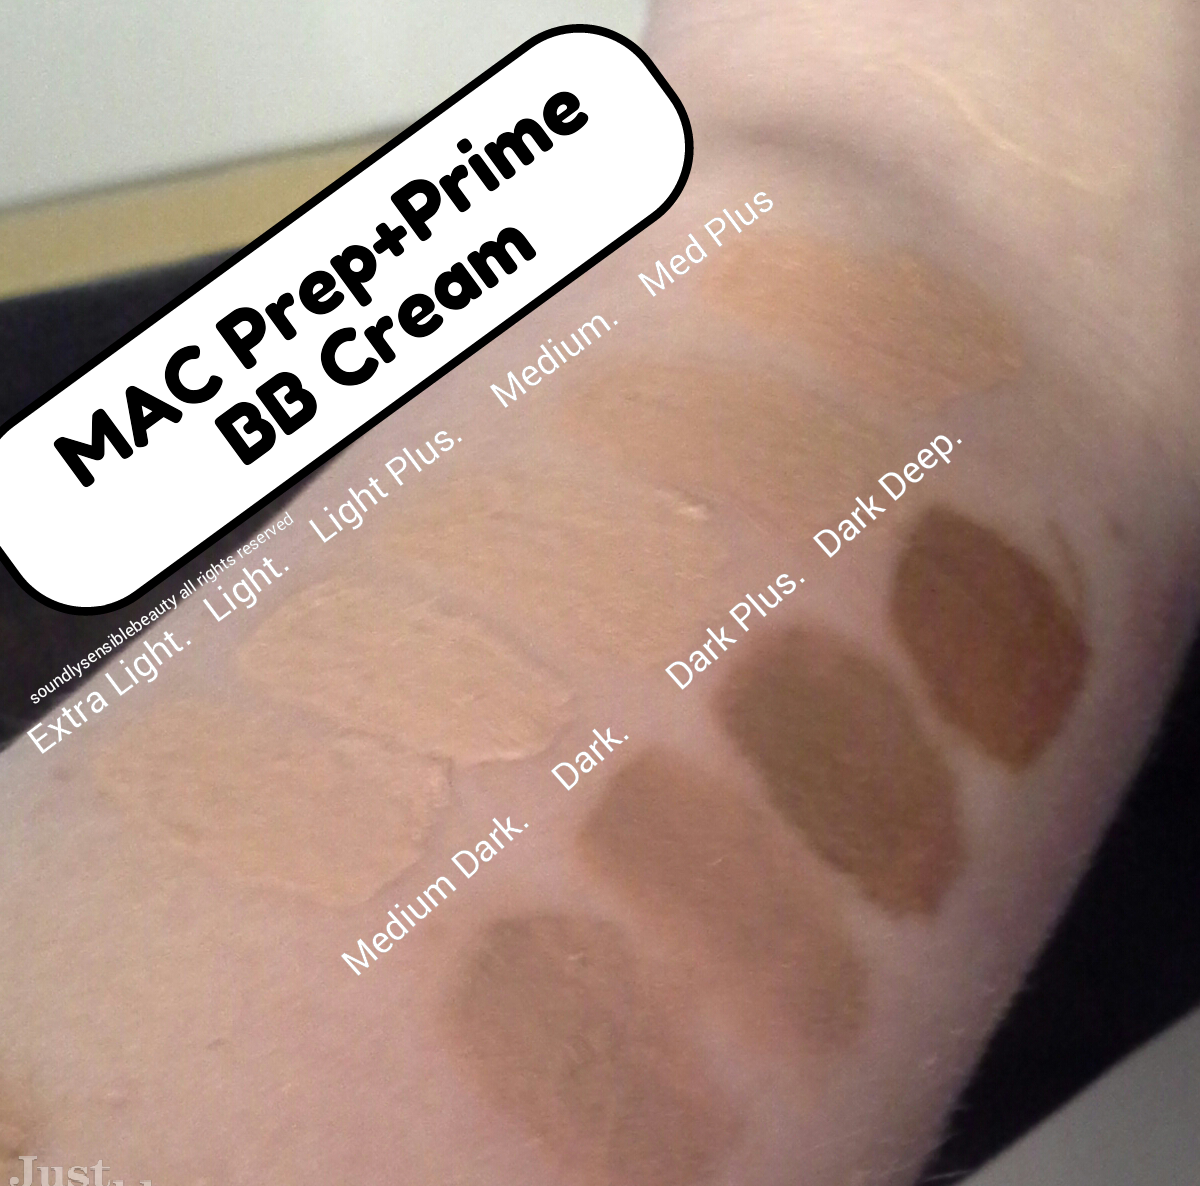 mac bb beauty balm review